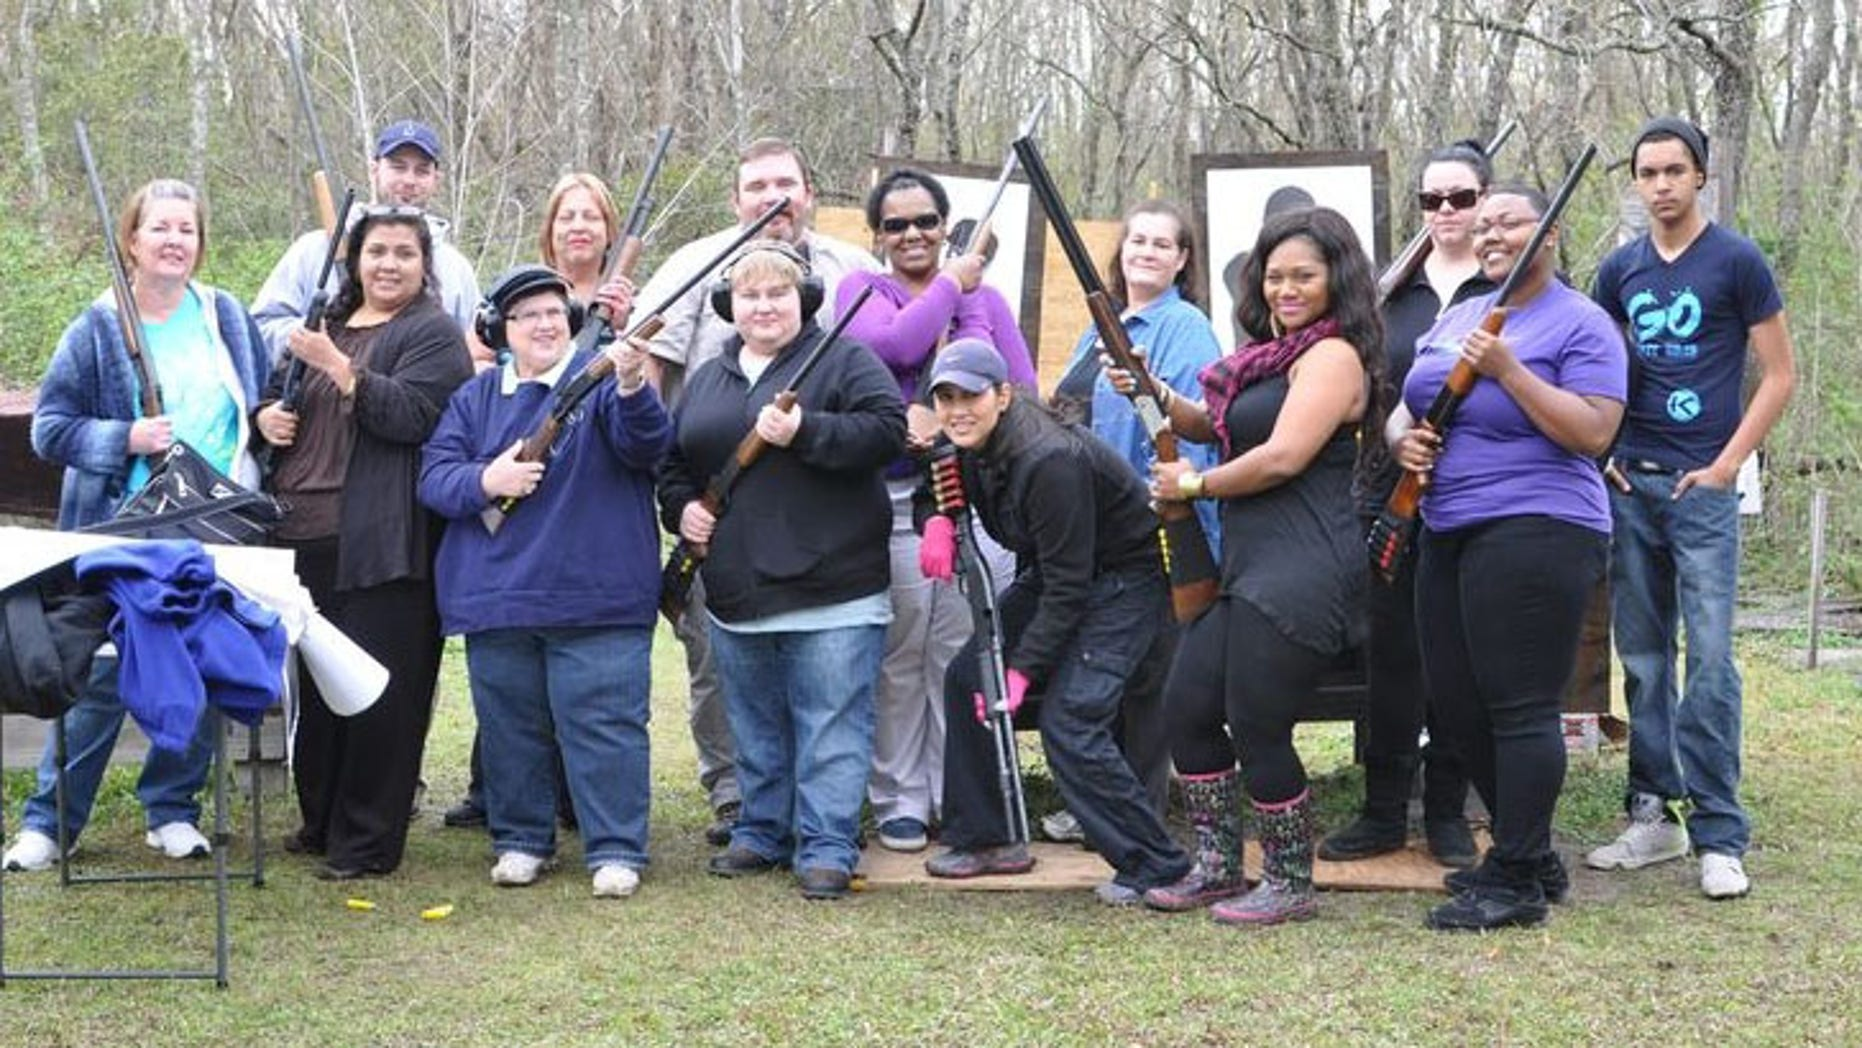 Members of Armed Citizen Project say law abiding people in poor neighborhoods deserve to defend themselves, but critics believe more guns will mean more violence. (Armed Citizen Project)